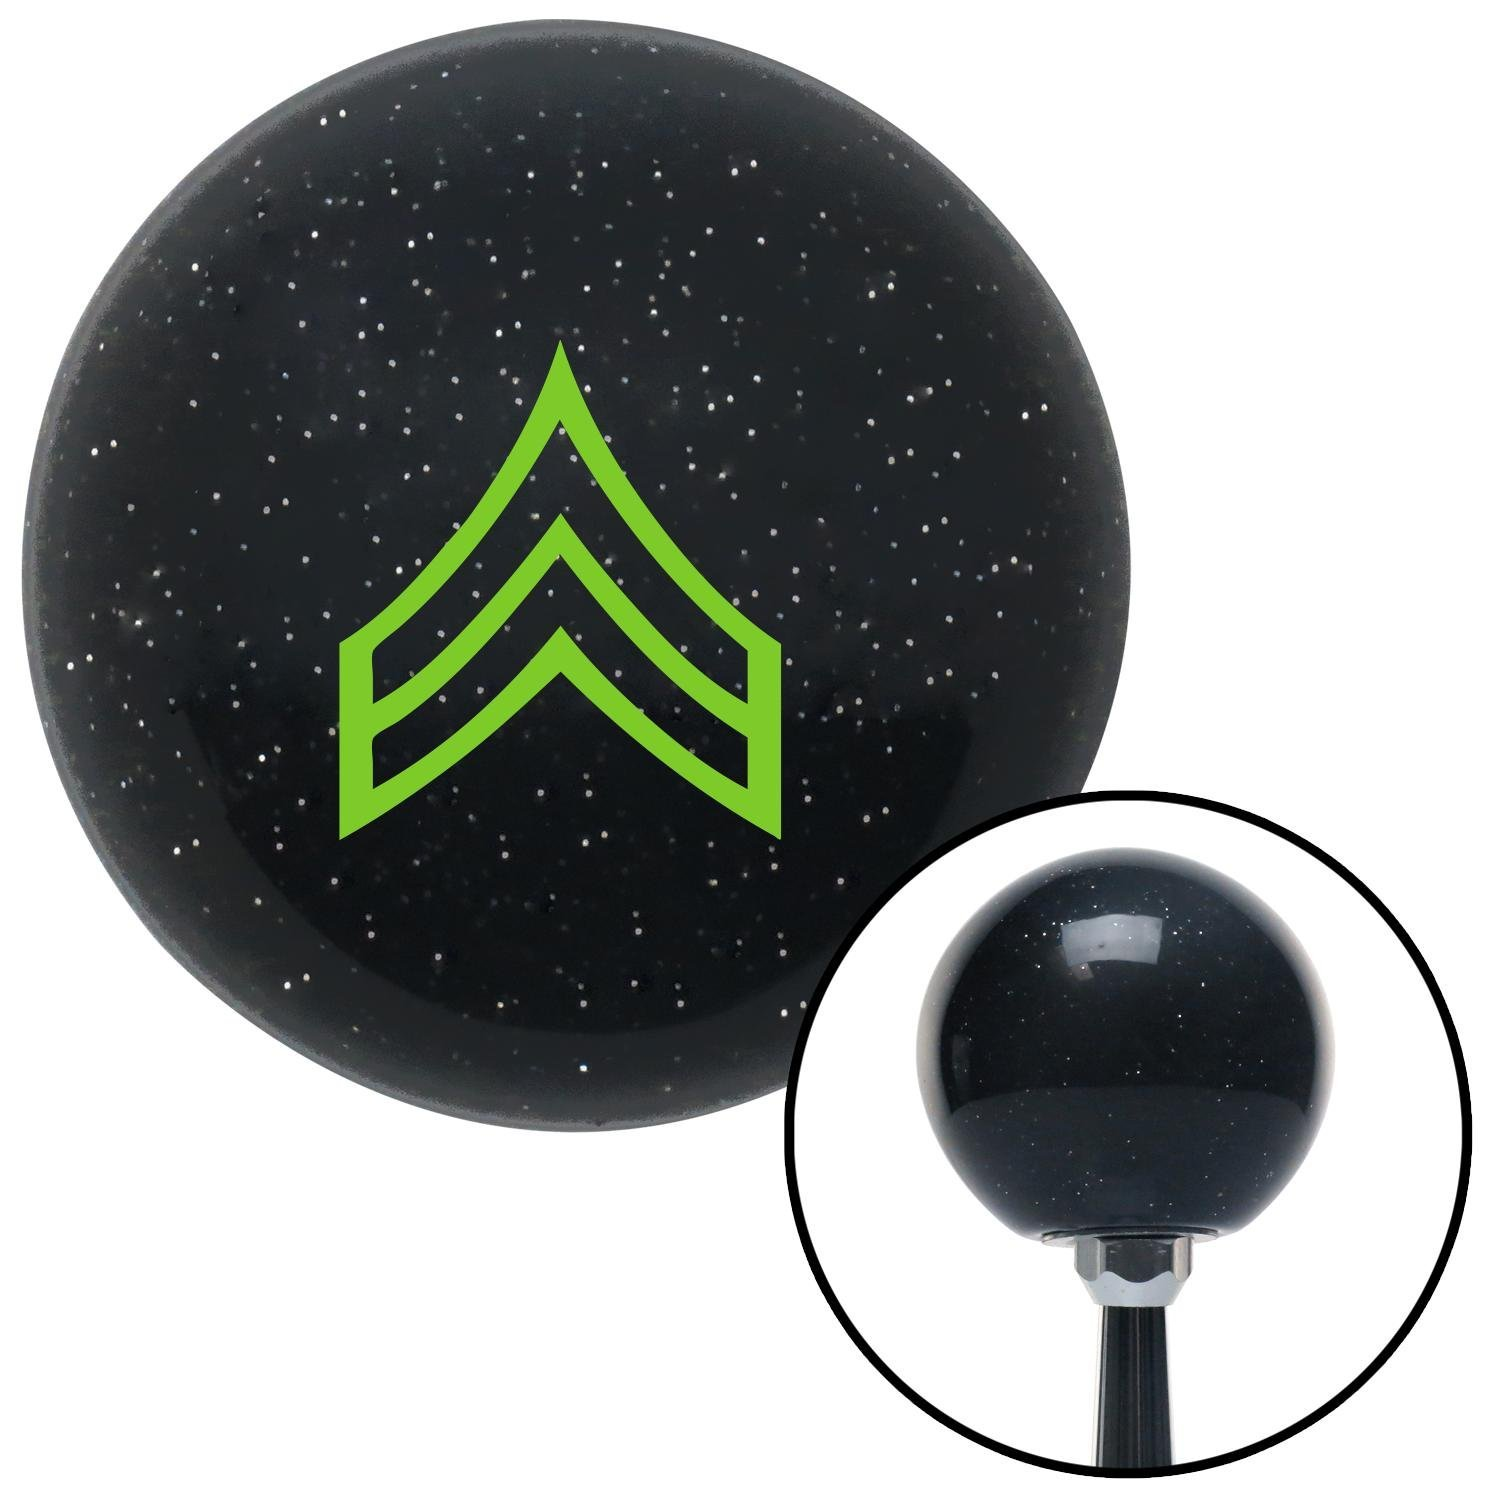 American Shifter 72415 Black Metal Flake Shift Knob with M16 x 1.5 Insert Green Corporal